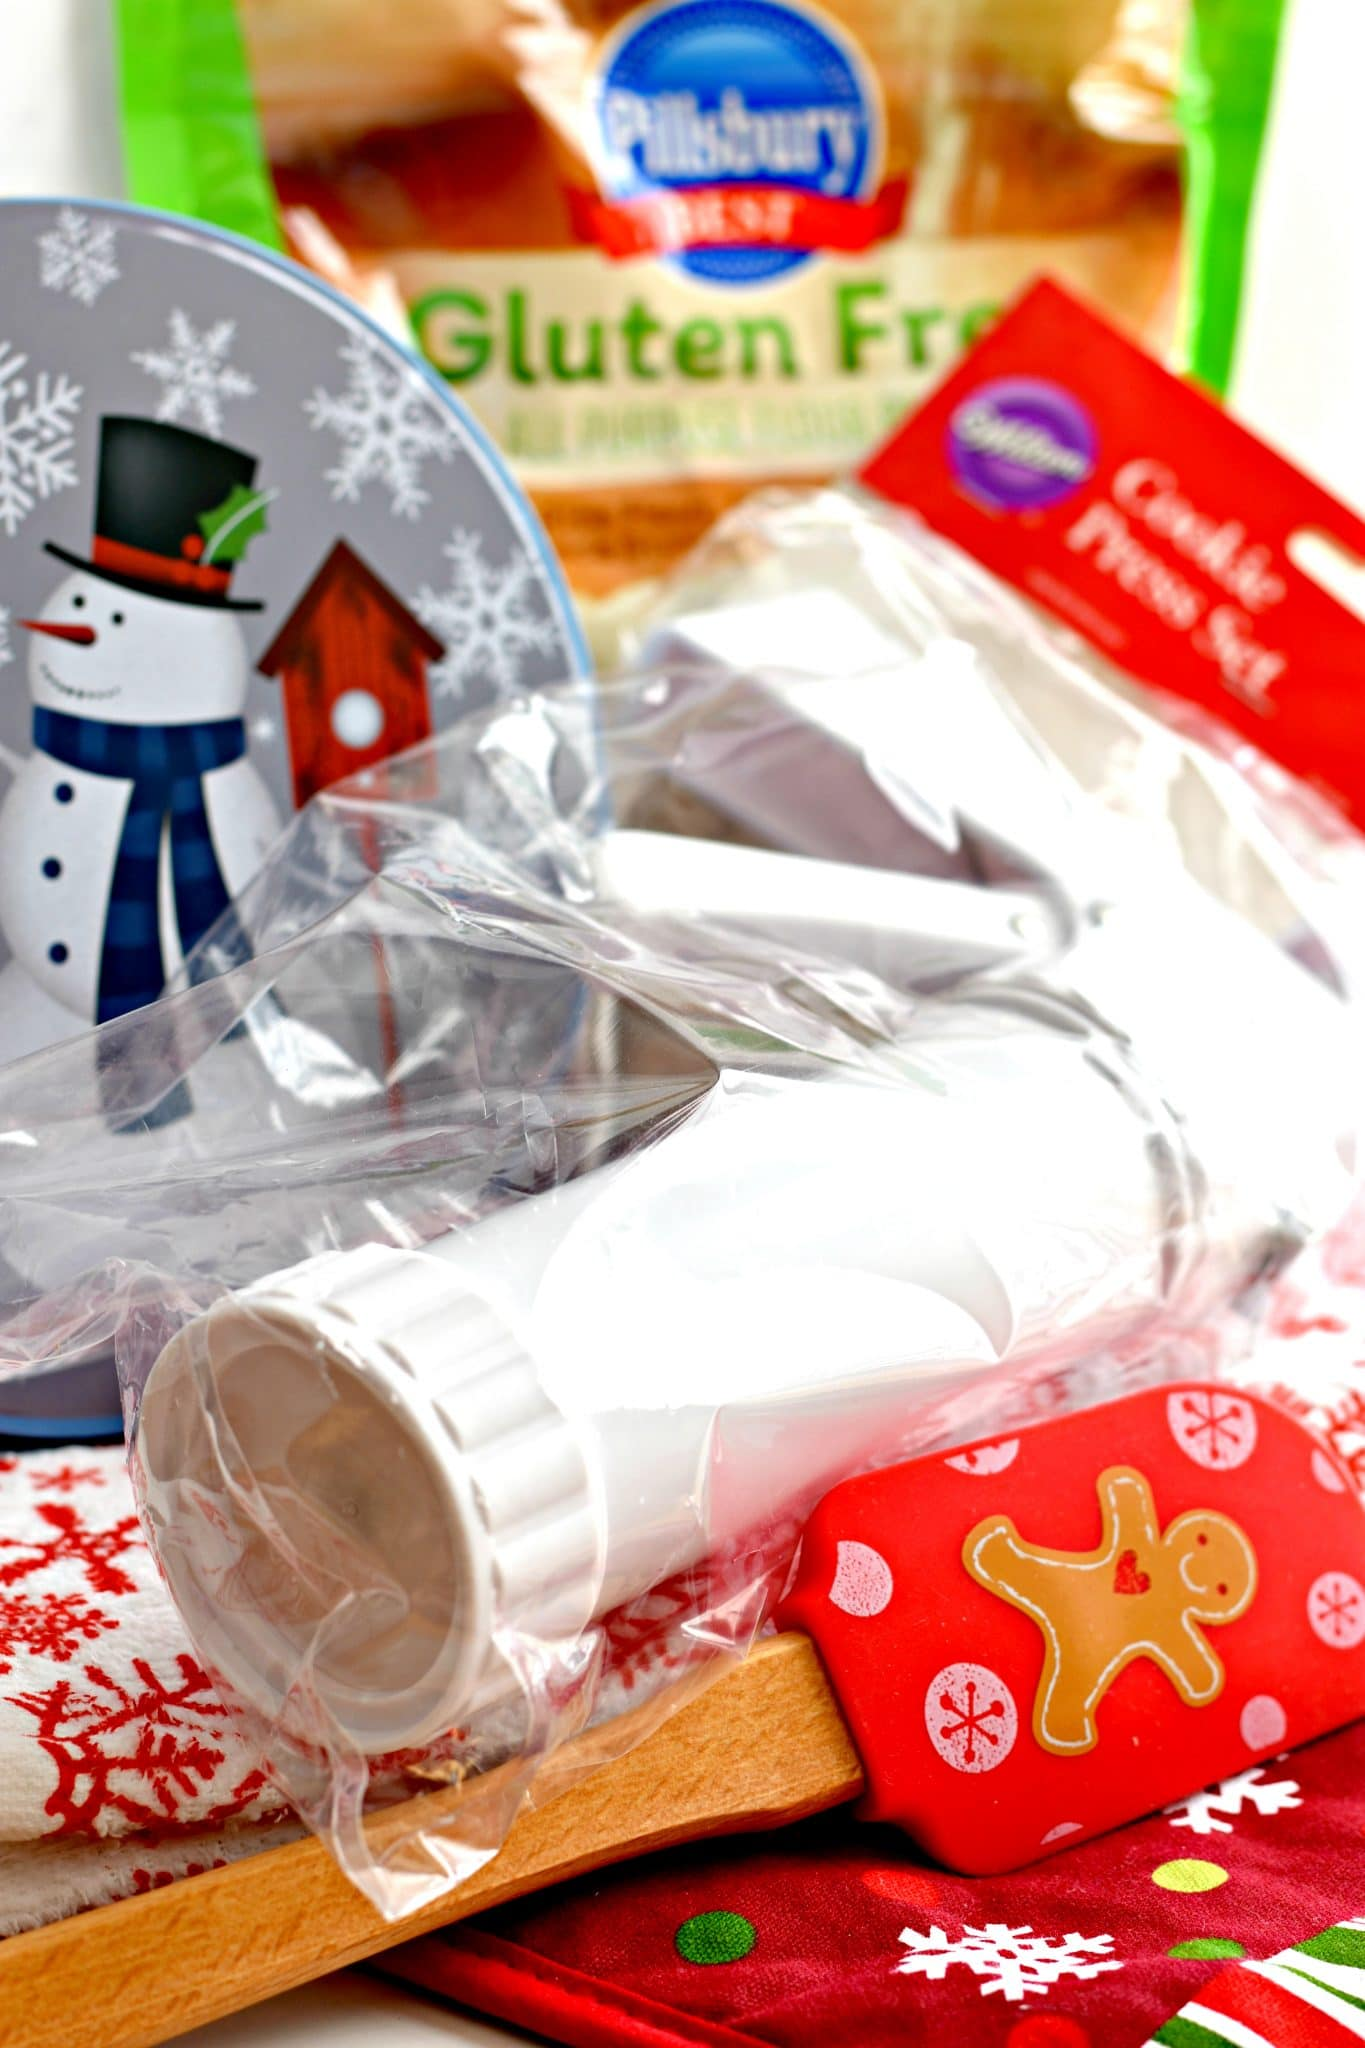 Gluten Free Holiday Baking Giveaway